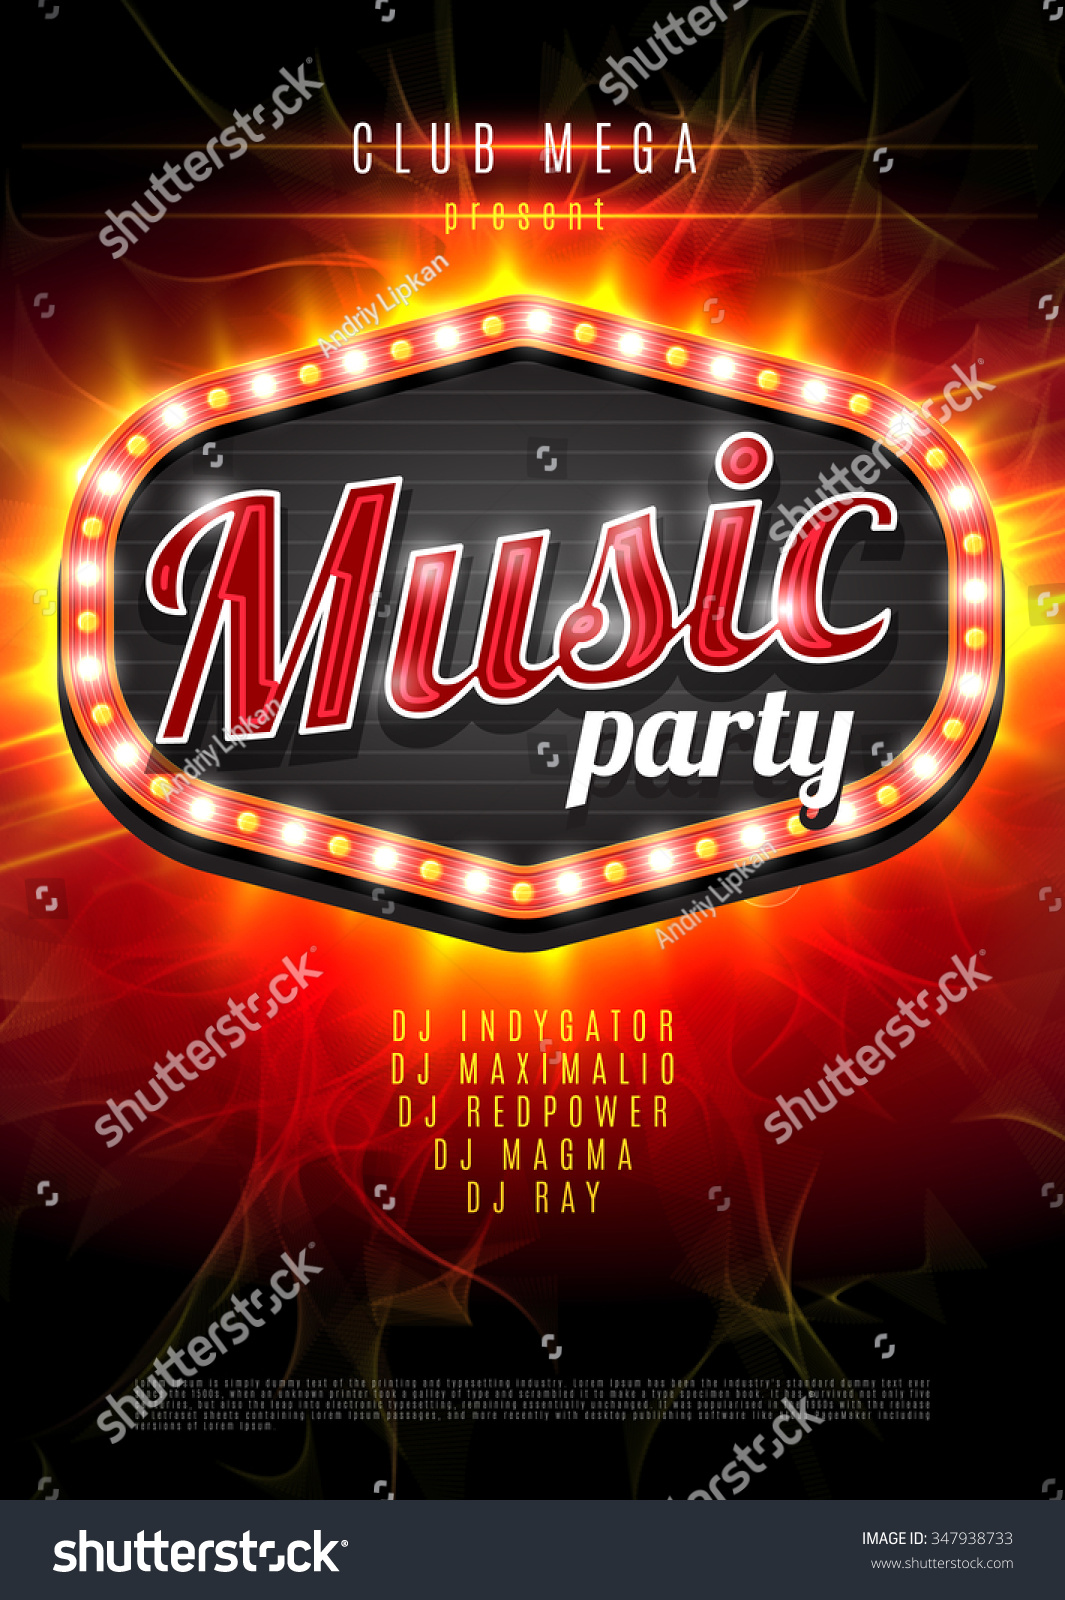 Abstract music party background for music event design. Retro light frame on red flame background. vector illustration